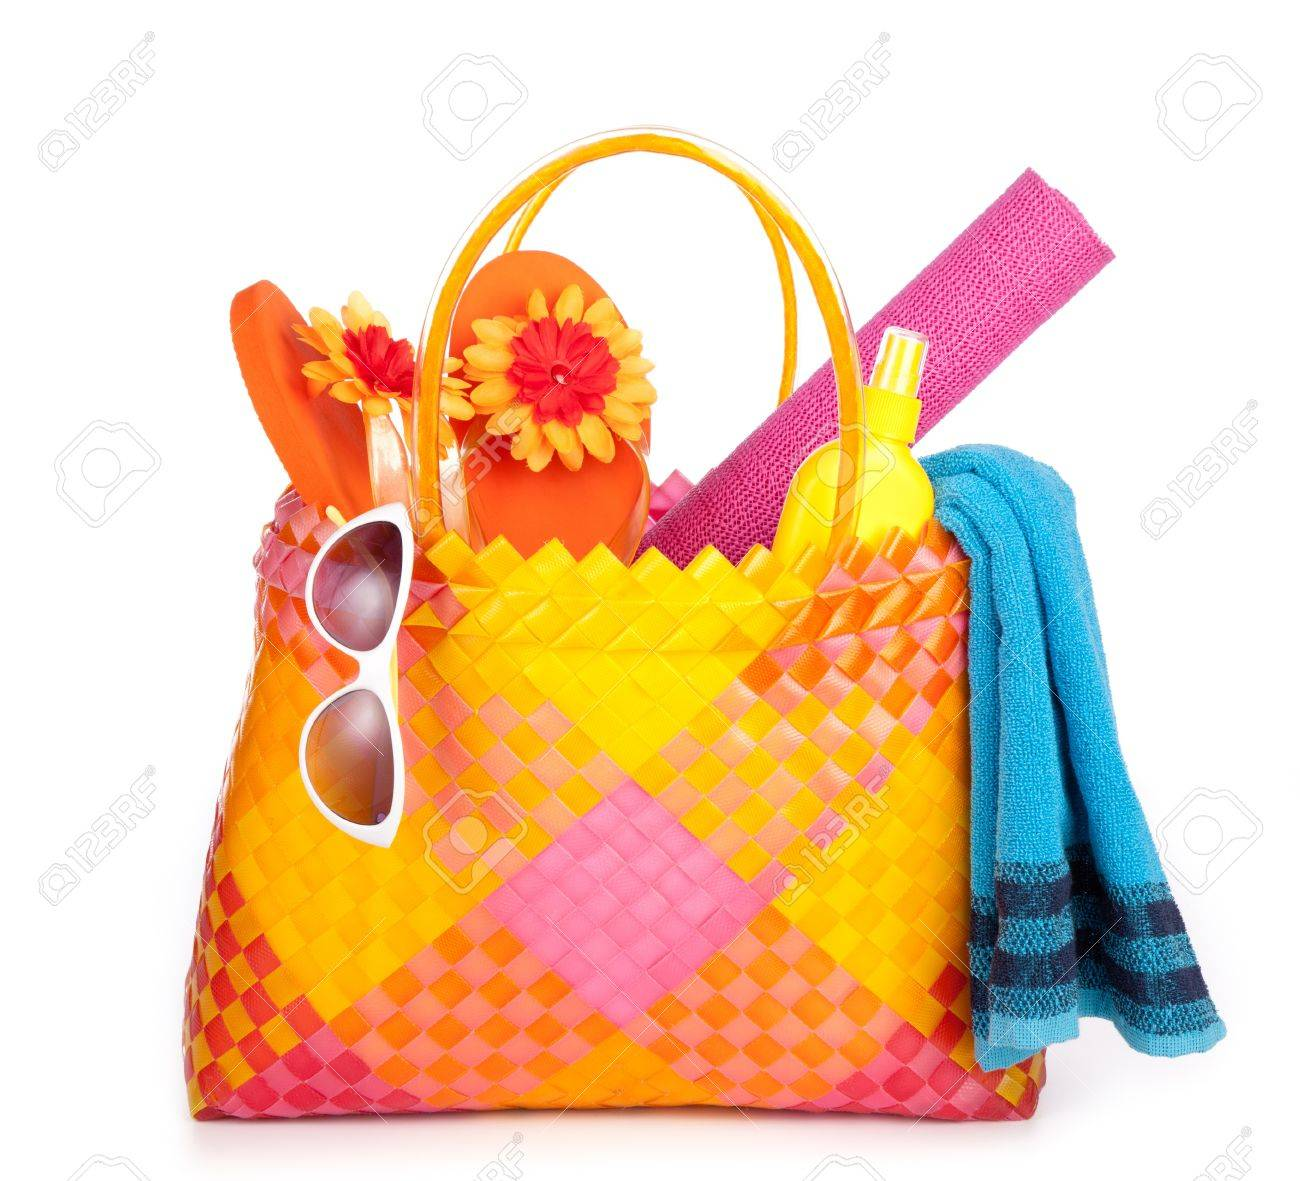 Beach Bag Items Stock Photo, Picture And Royalty Free Image. Image ...